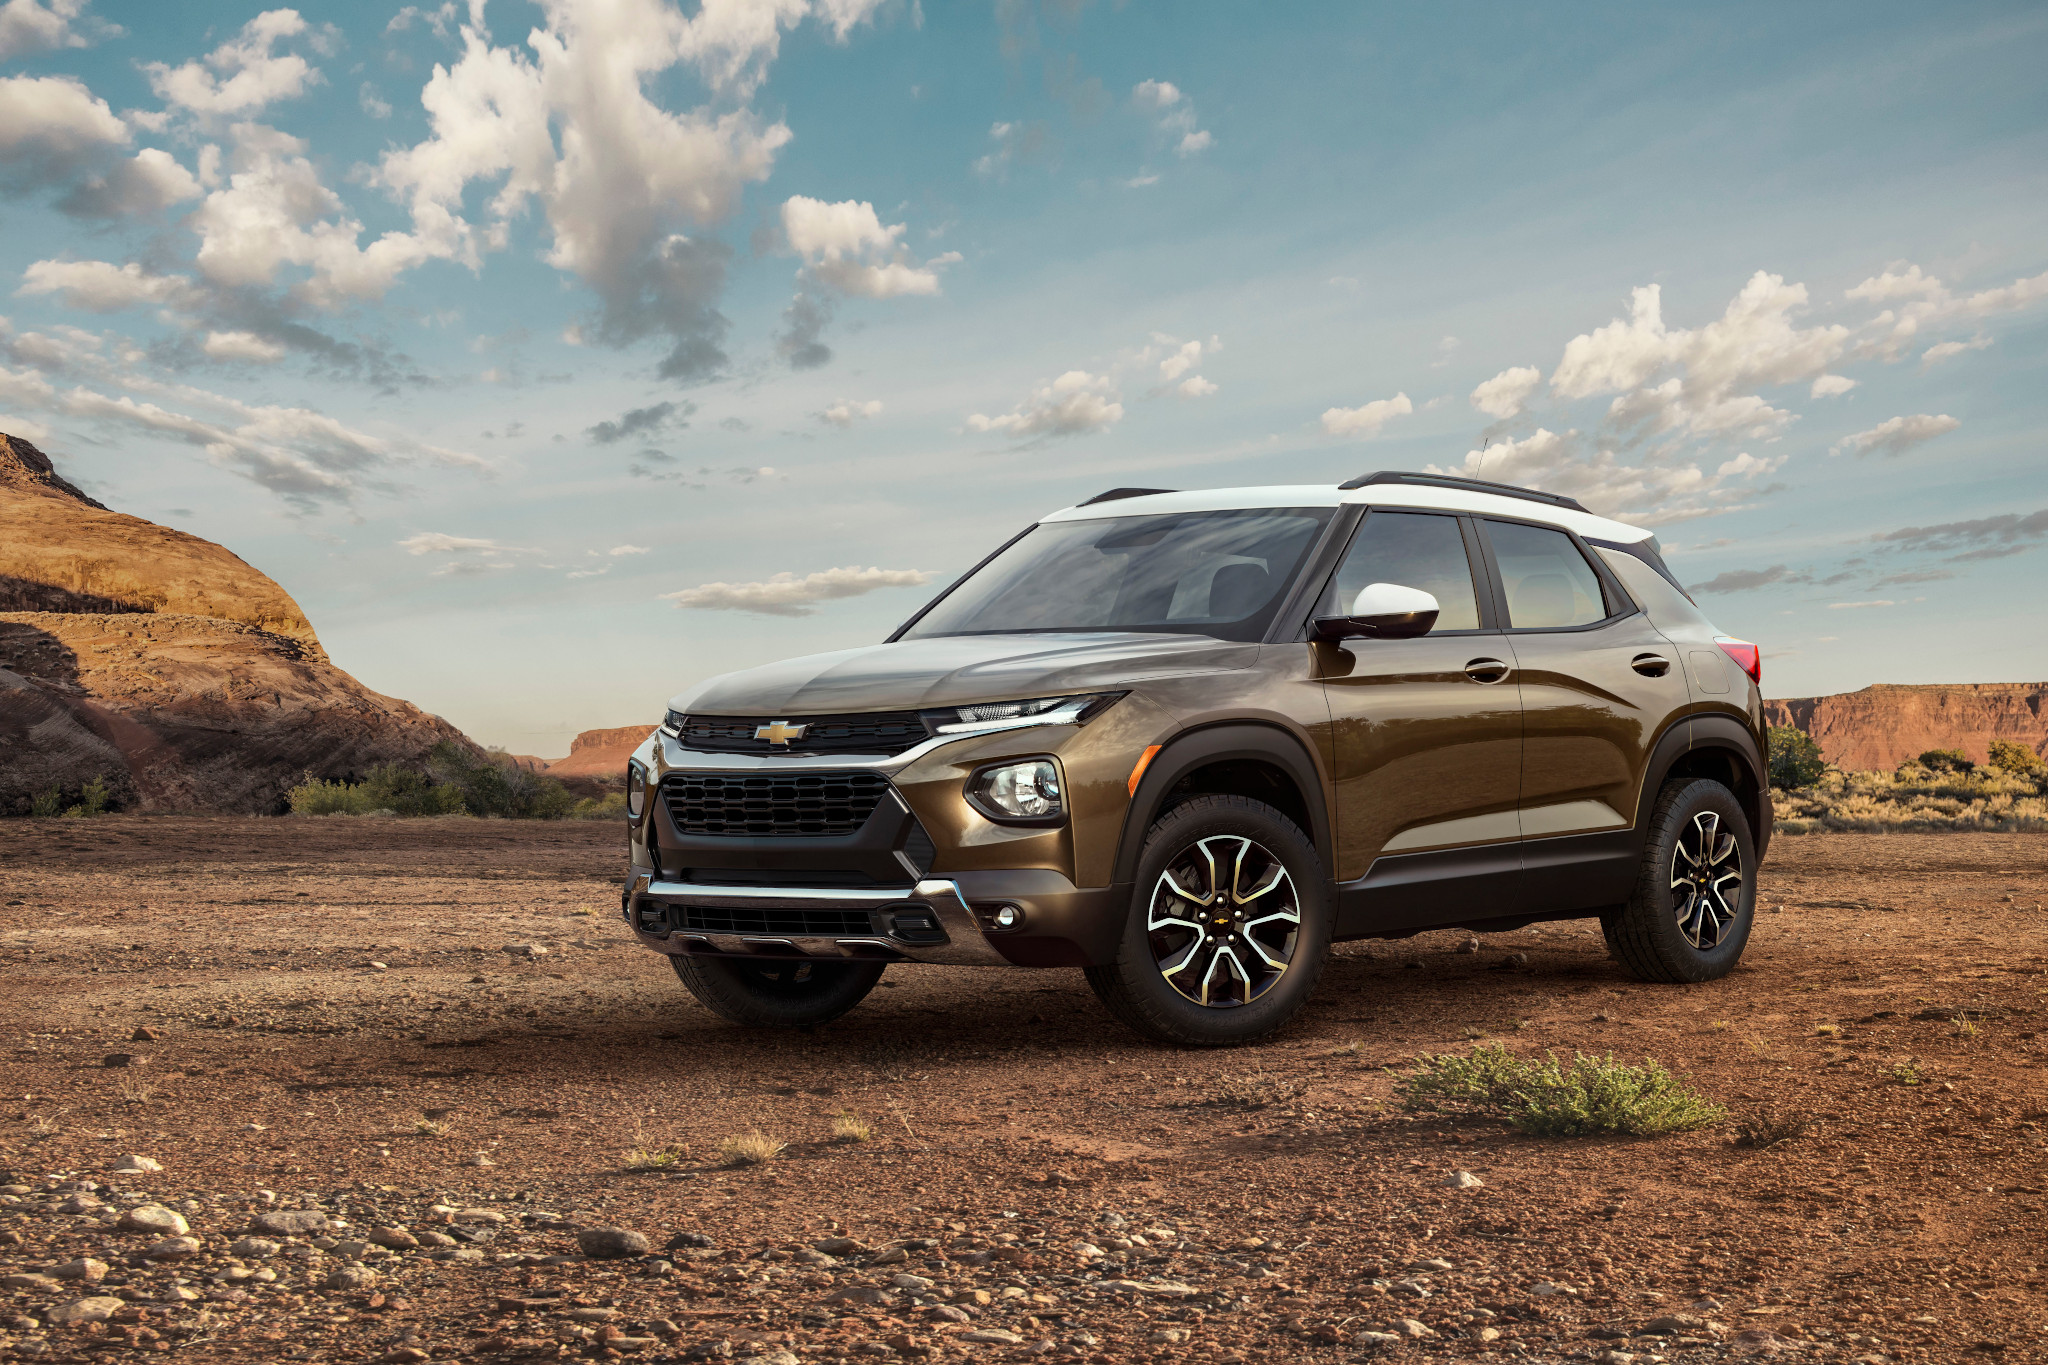 2021 Chevrolet Trailblazer: SUV Carries Torch for Past, Fired Up for Future